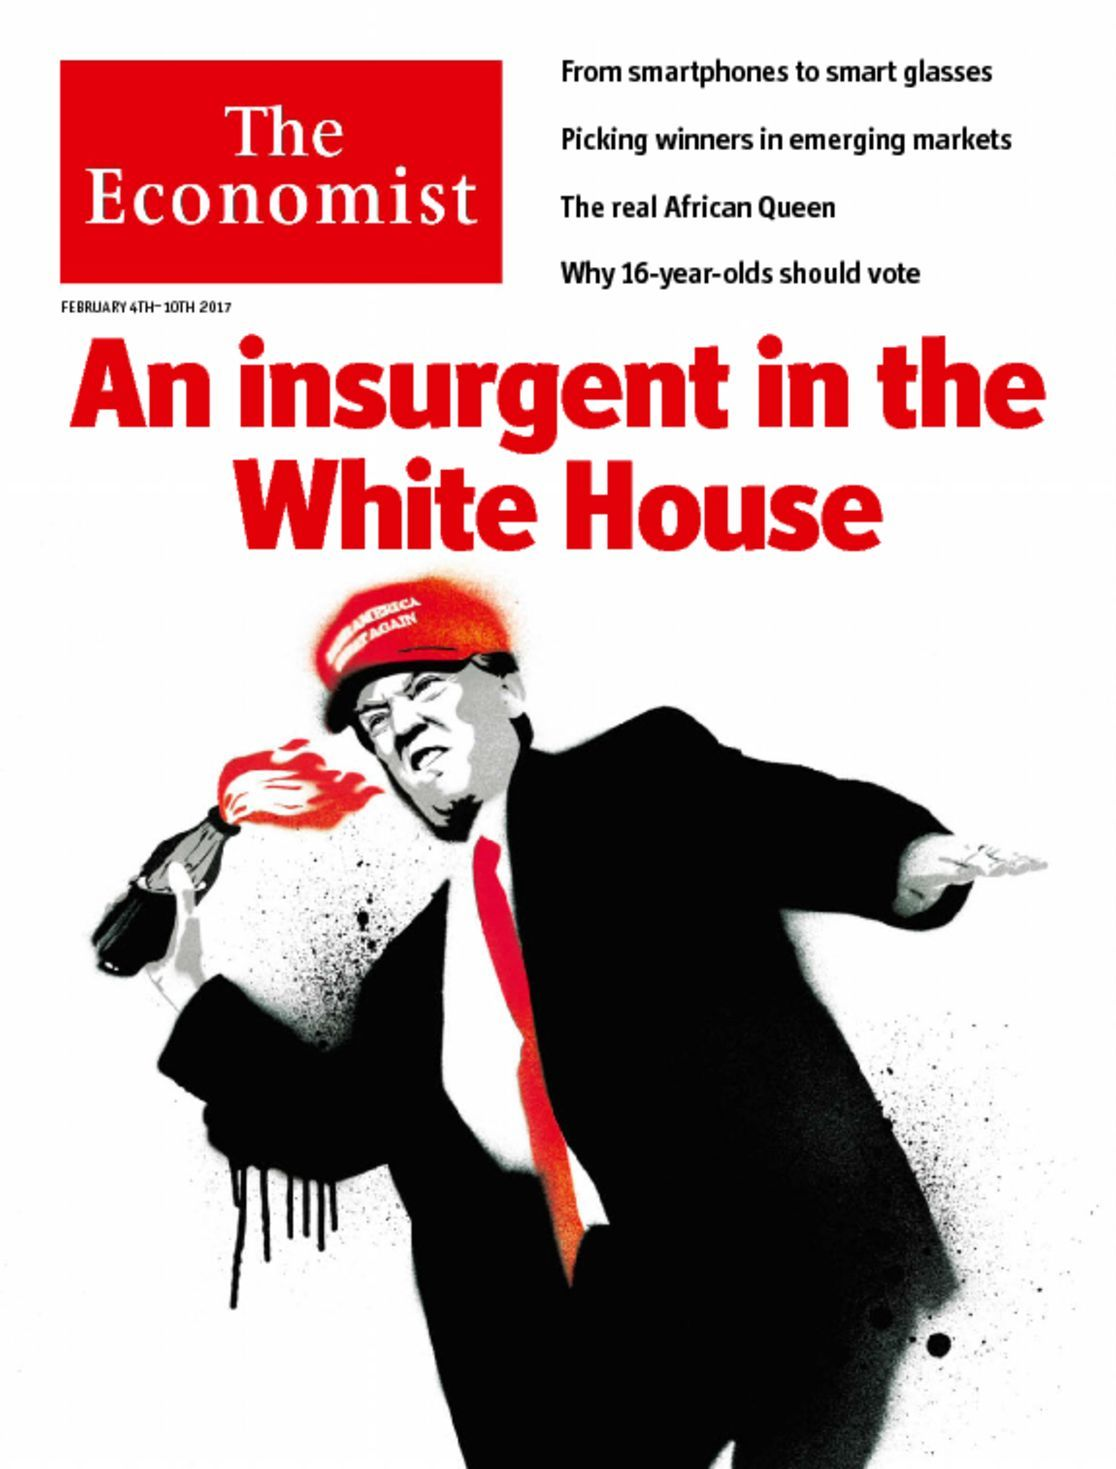 The Economist (Digital) Magazine - DiscountMags.com